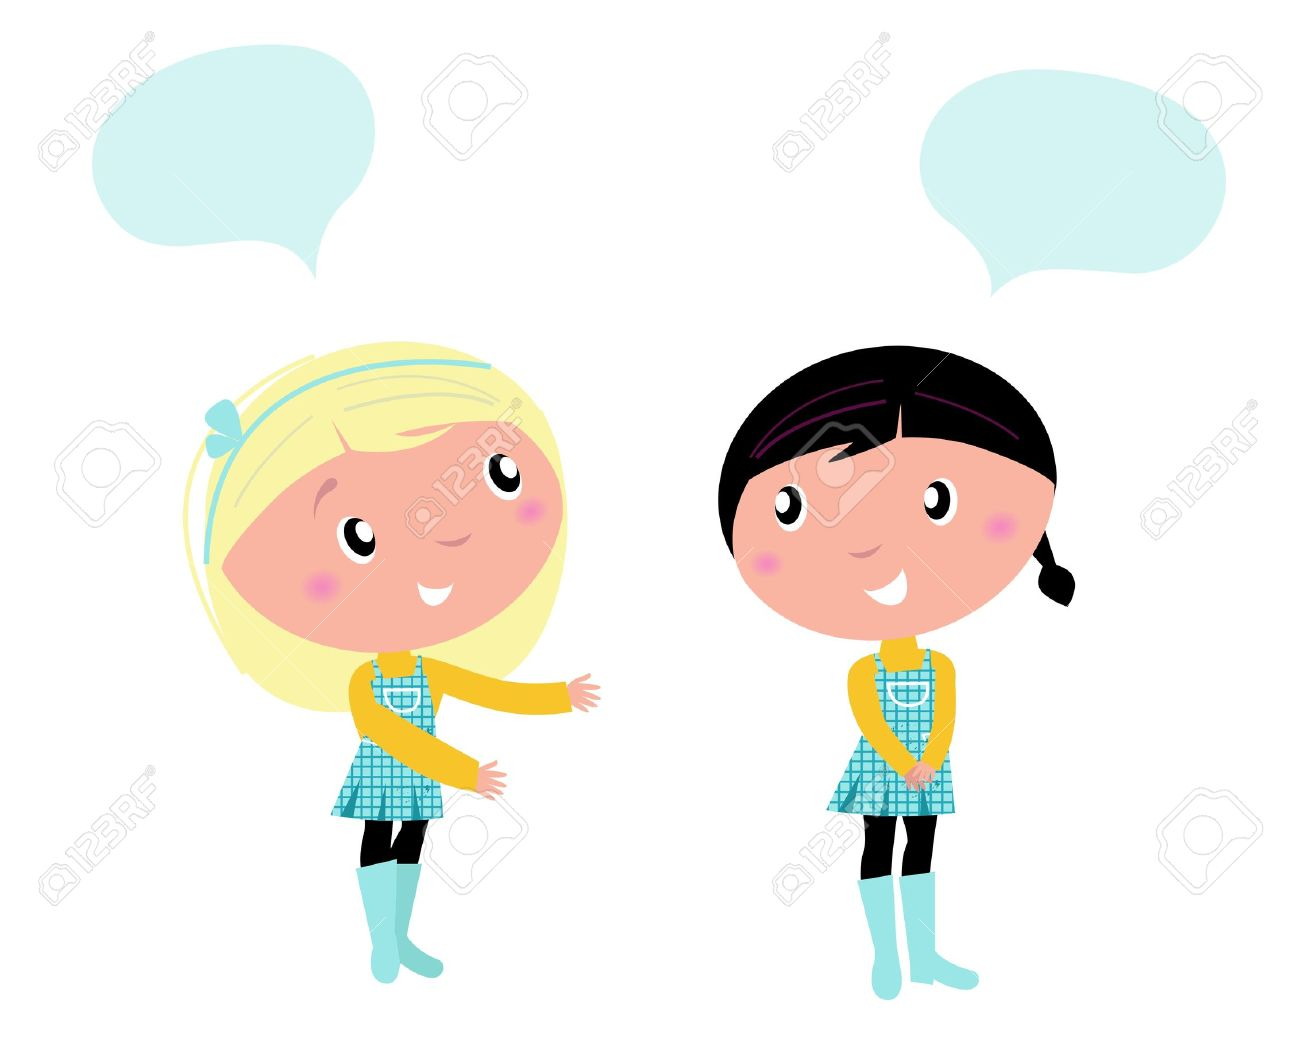 Girls Talking To Each Other Clipart.